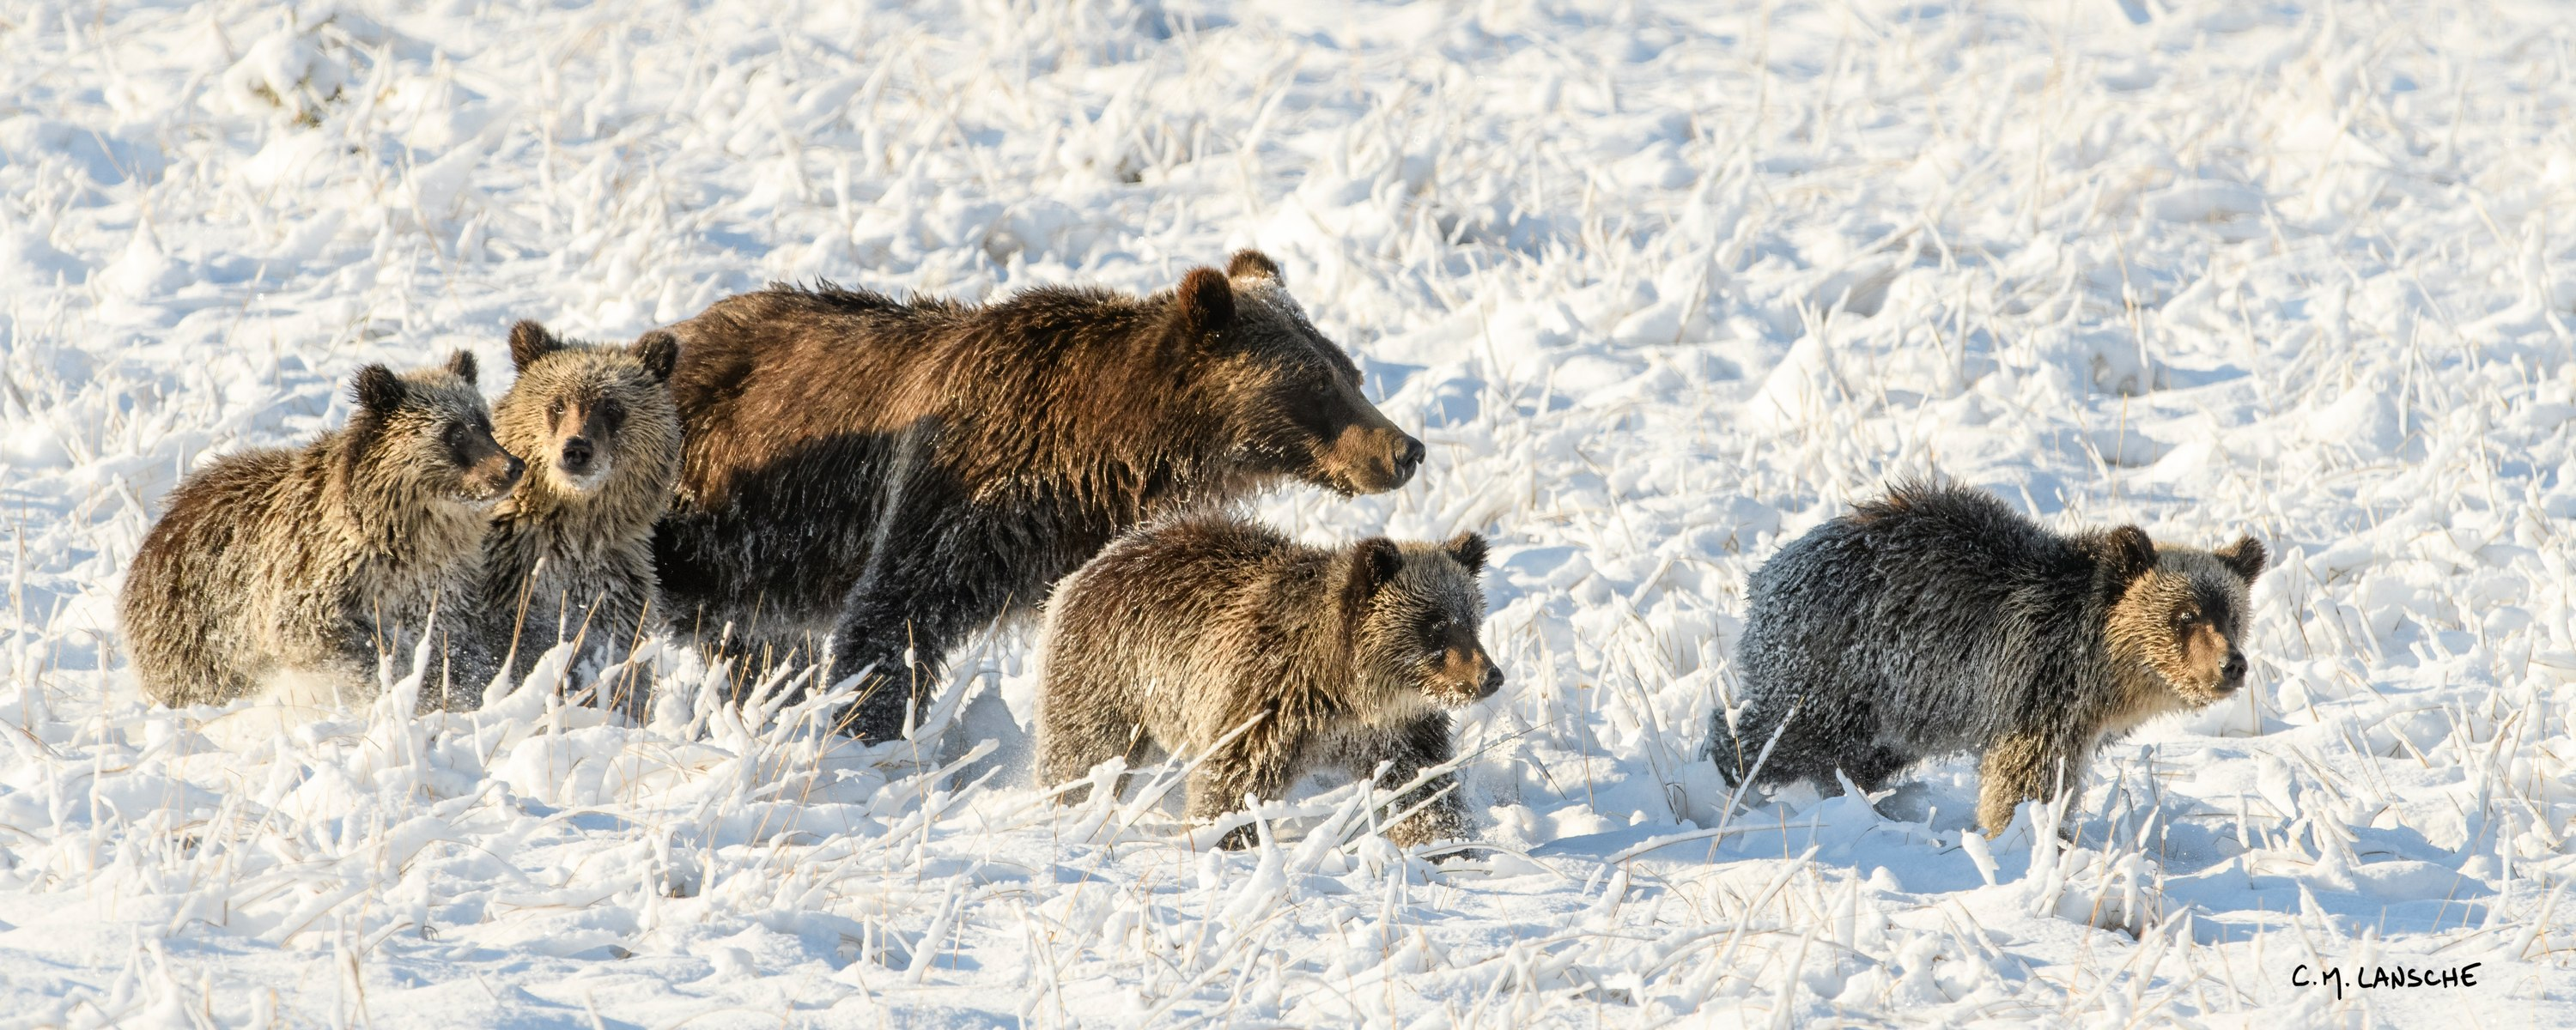 <div class='title'>           First Snow Grizzly 399 and Quads           </div>                 <div class='description'>           First Snow Grizzly 399 and Quads           </div>